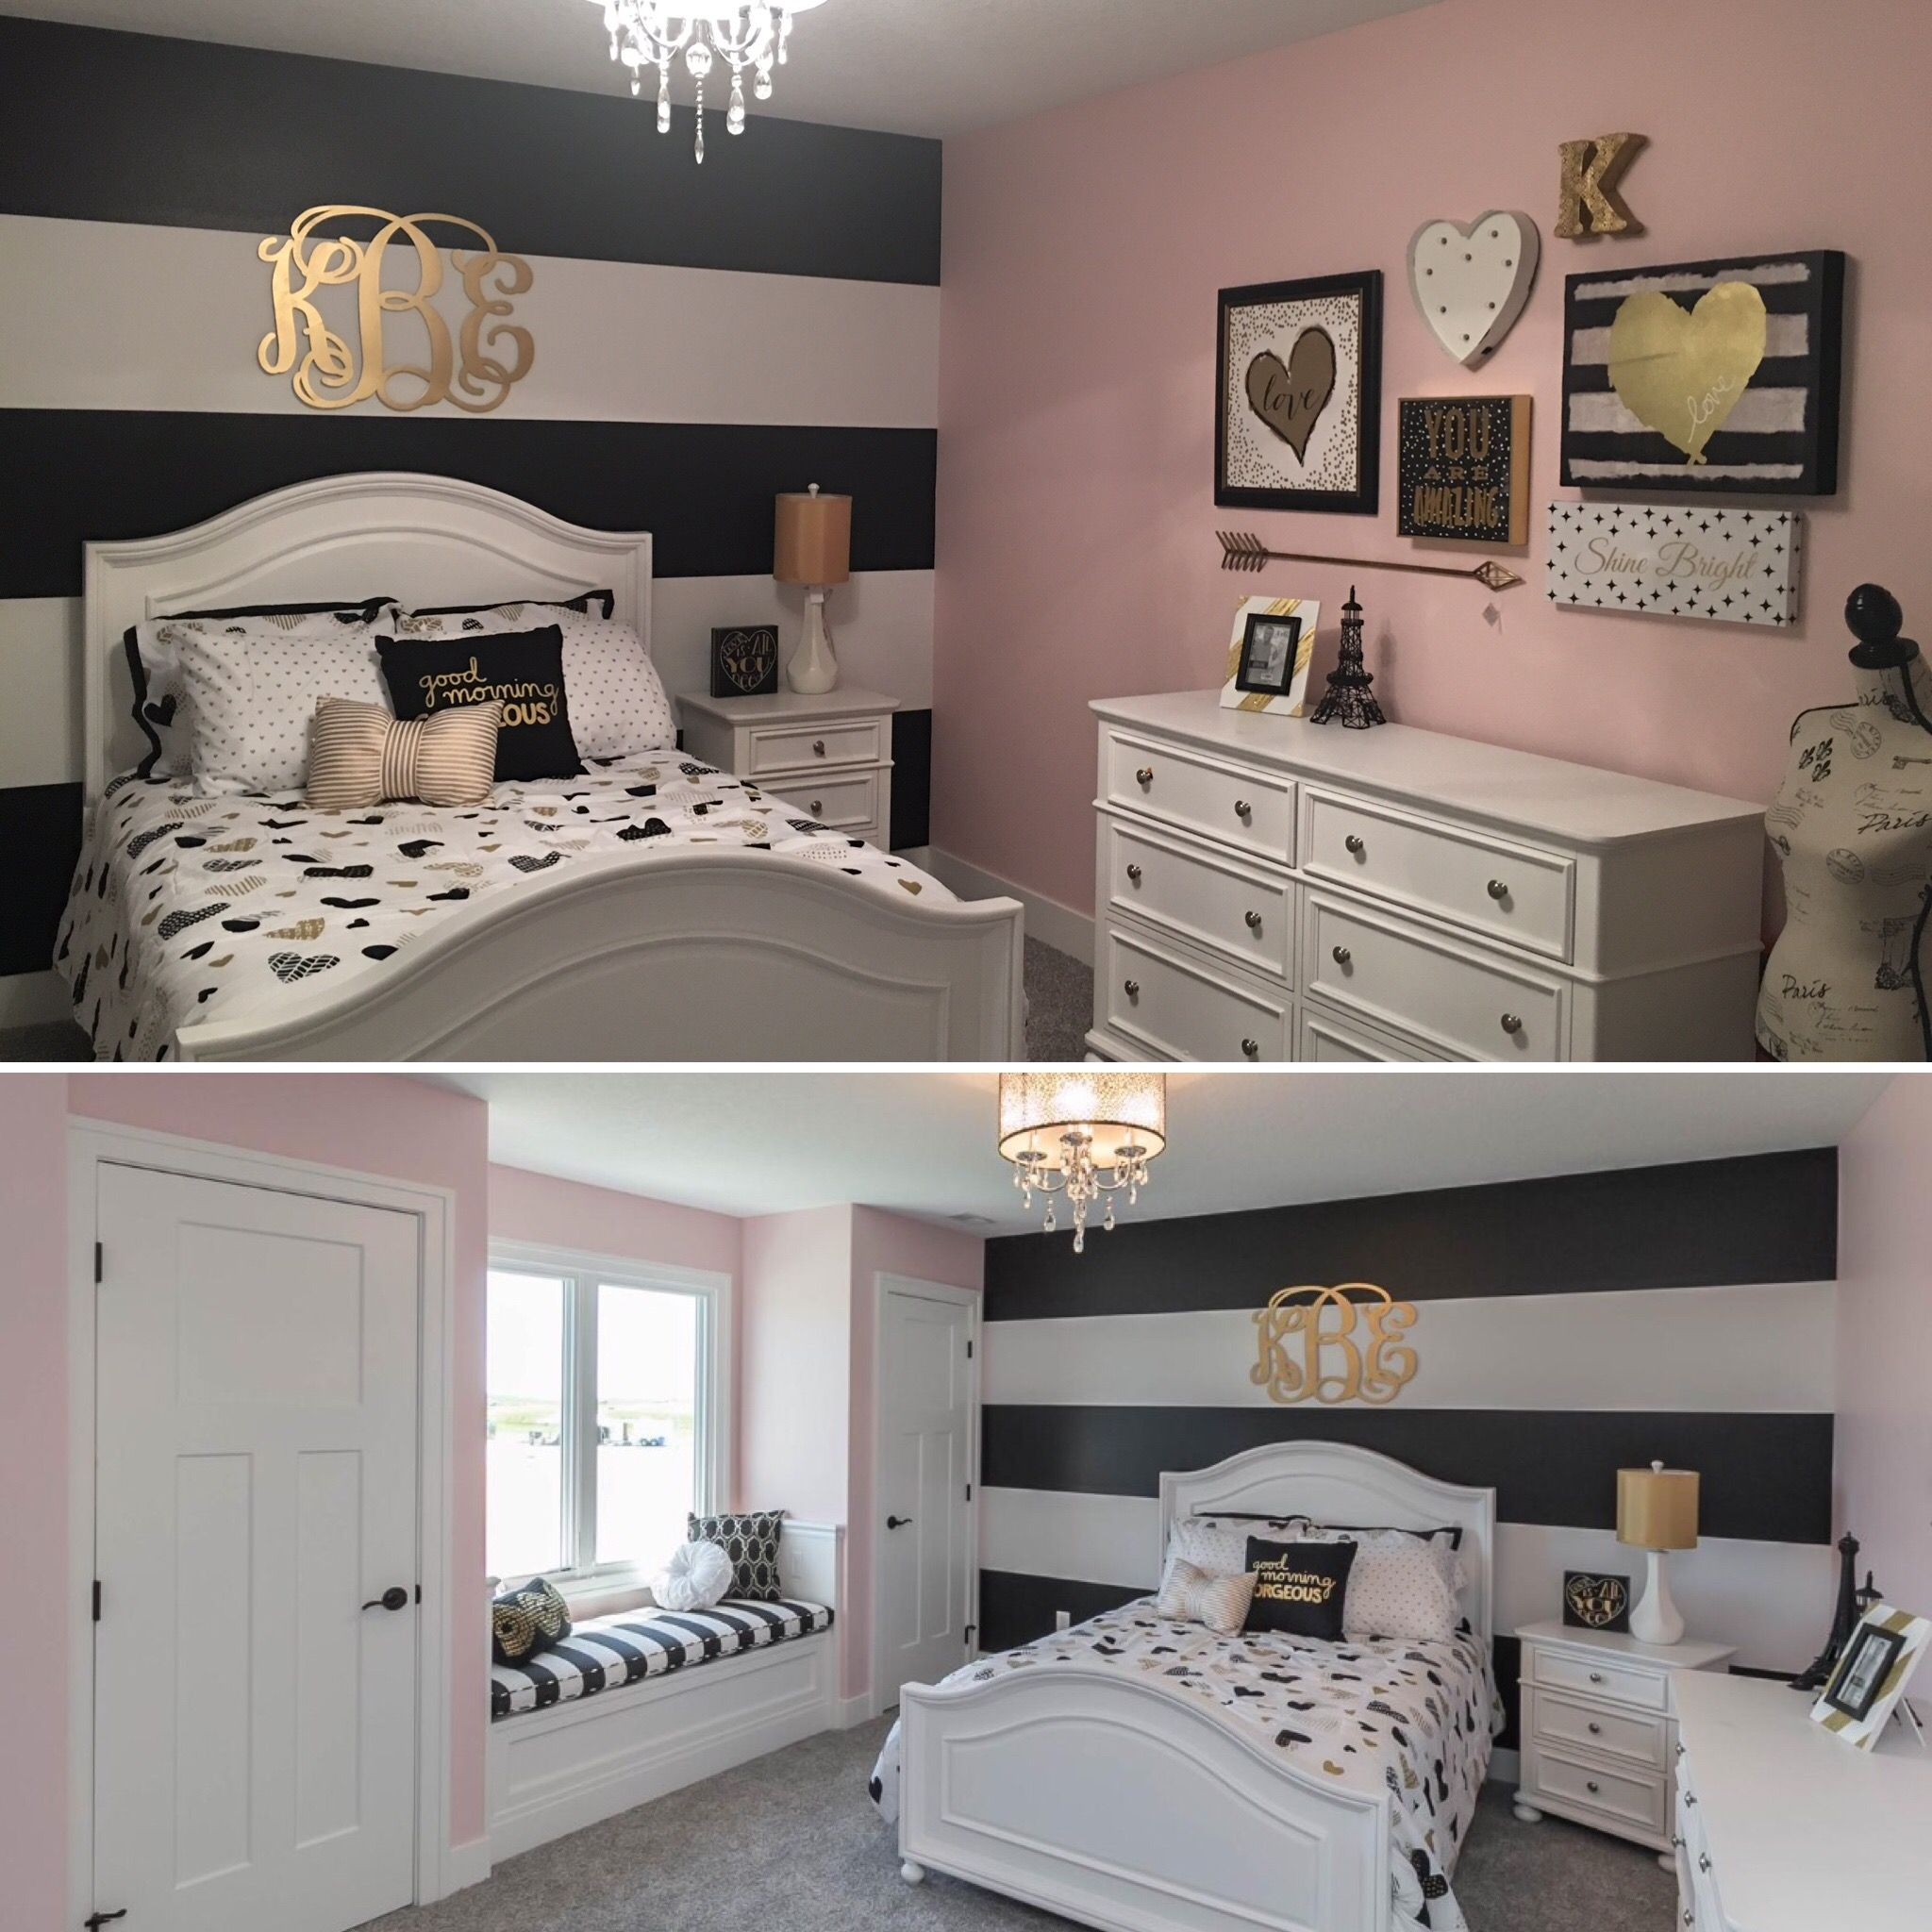 Black Bedroom Decor Ideas Girls Room With Black And Gold Accents All Very